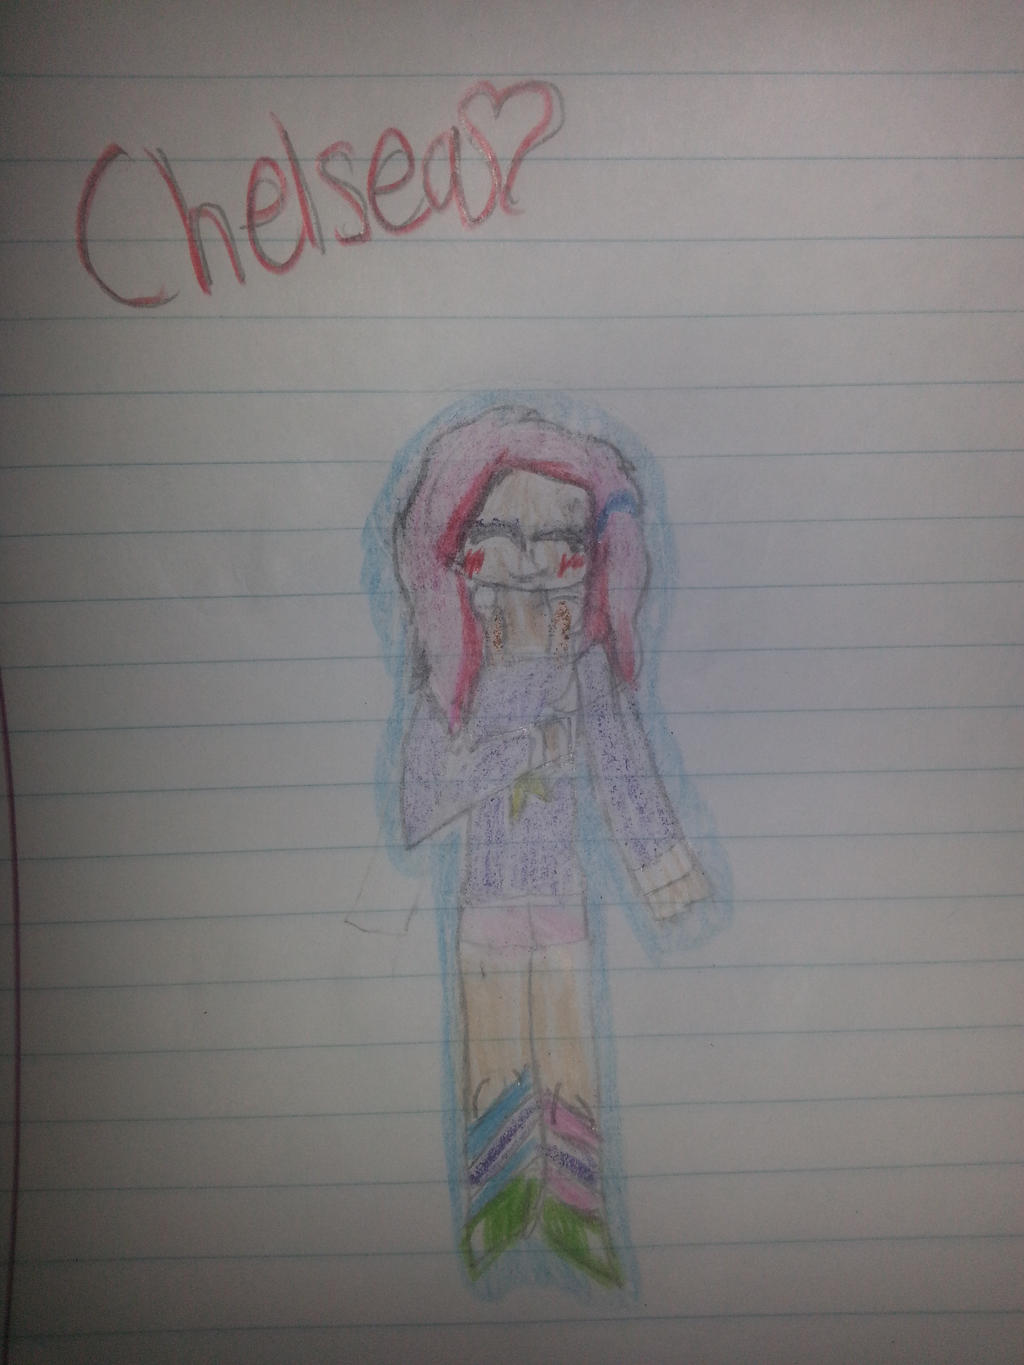 RQ: Chelsea by Haley0724